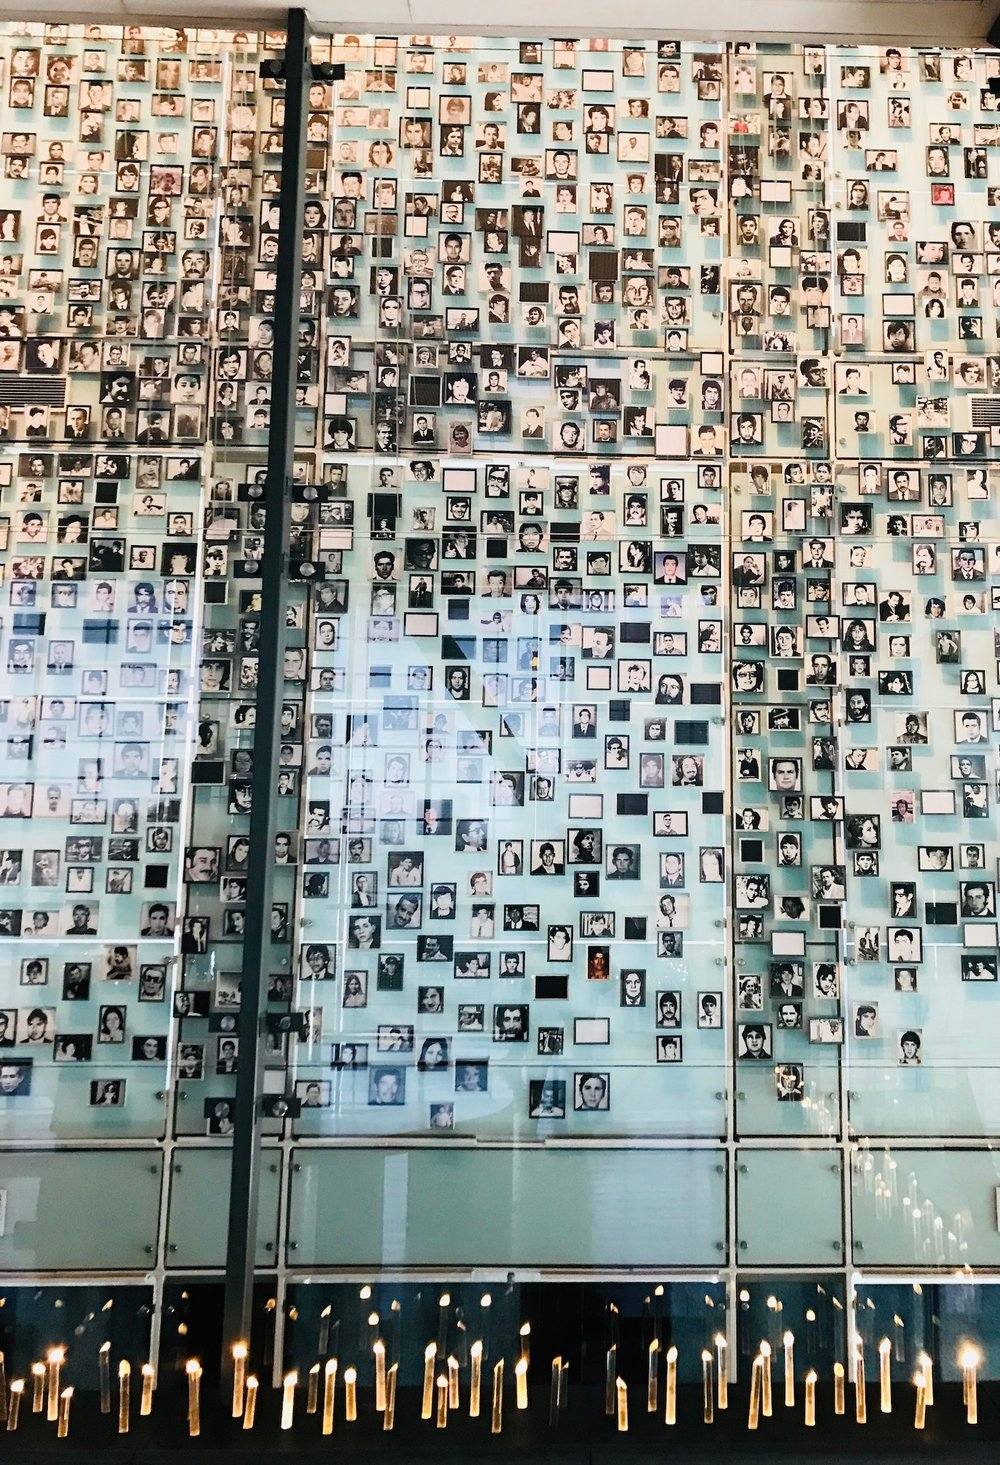 Photos of the disappeared and murdered Chileans under Pinochet's dictatorship